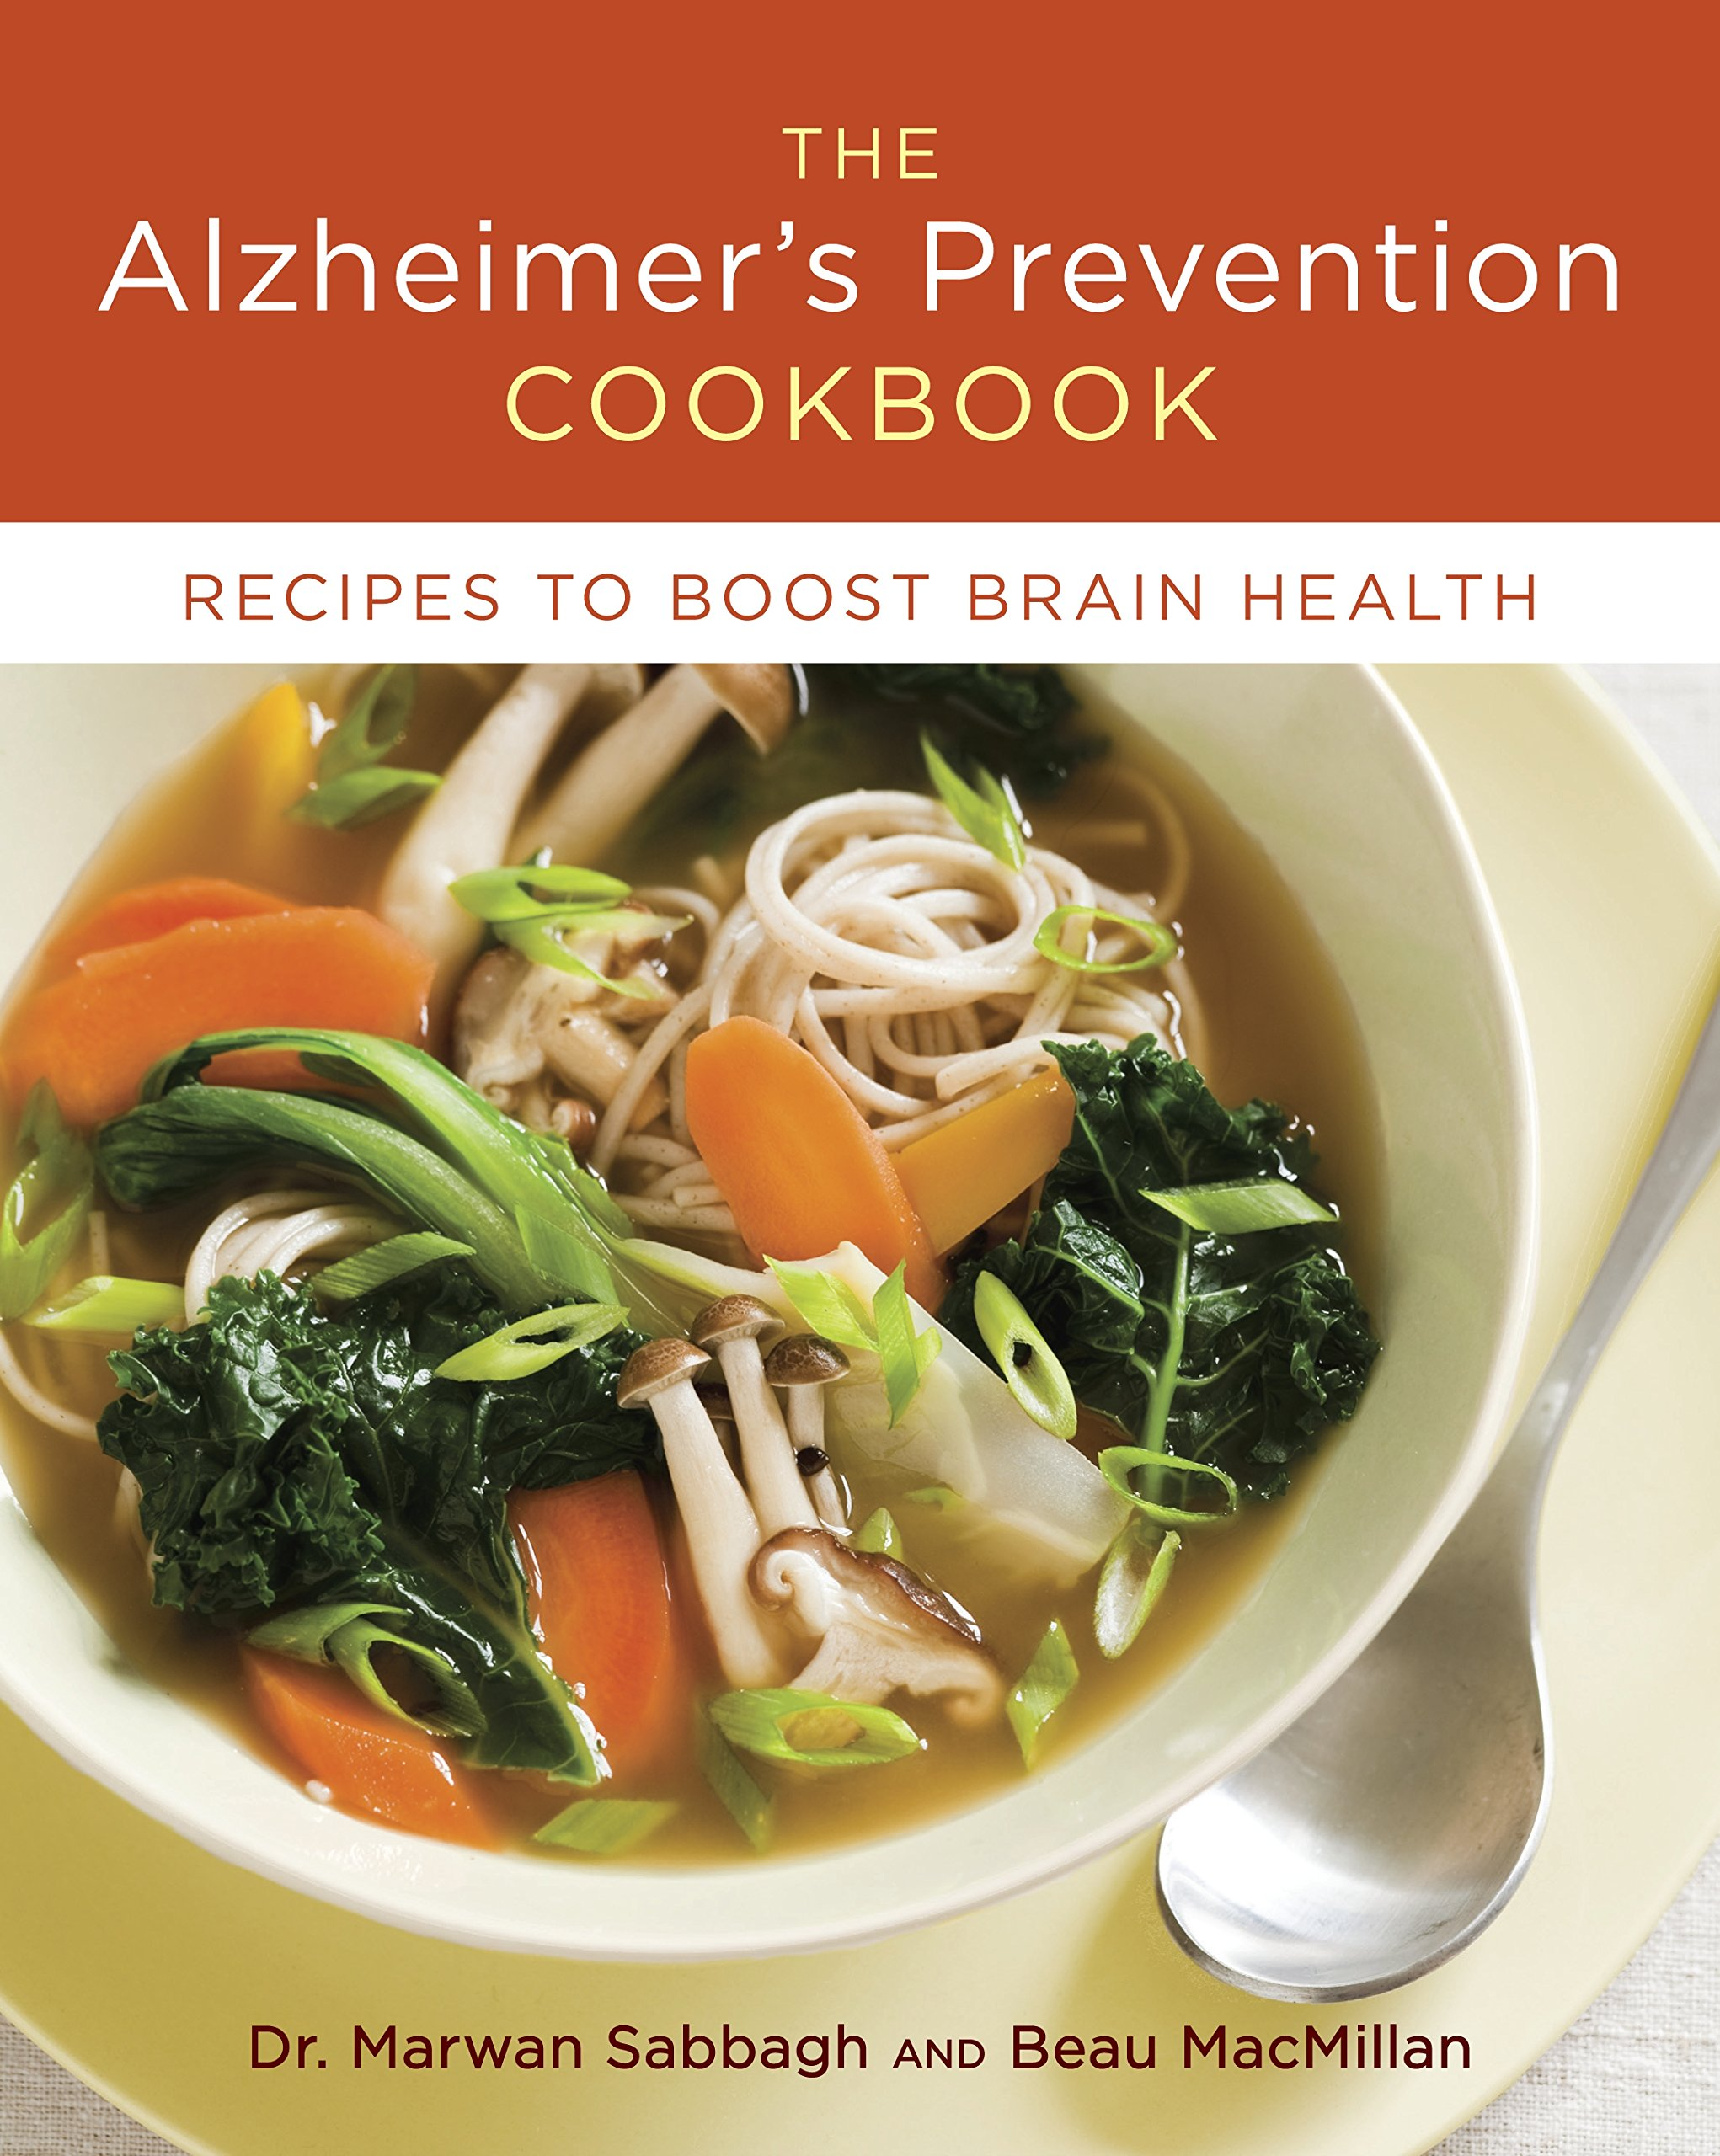 The alzheimers prevention cookbook 100 recipes to boost brain the alzheimers prevention cookbook 100 recipes to boost brain health dr marwan sabbagh beau macmillan 9781607742470 amazon books forumfinder Images